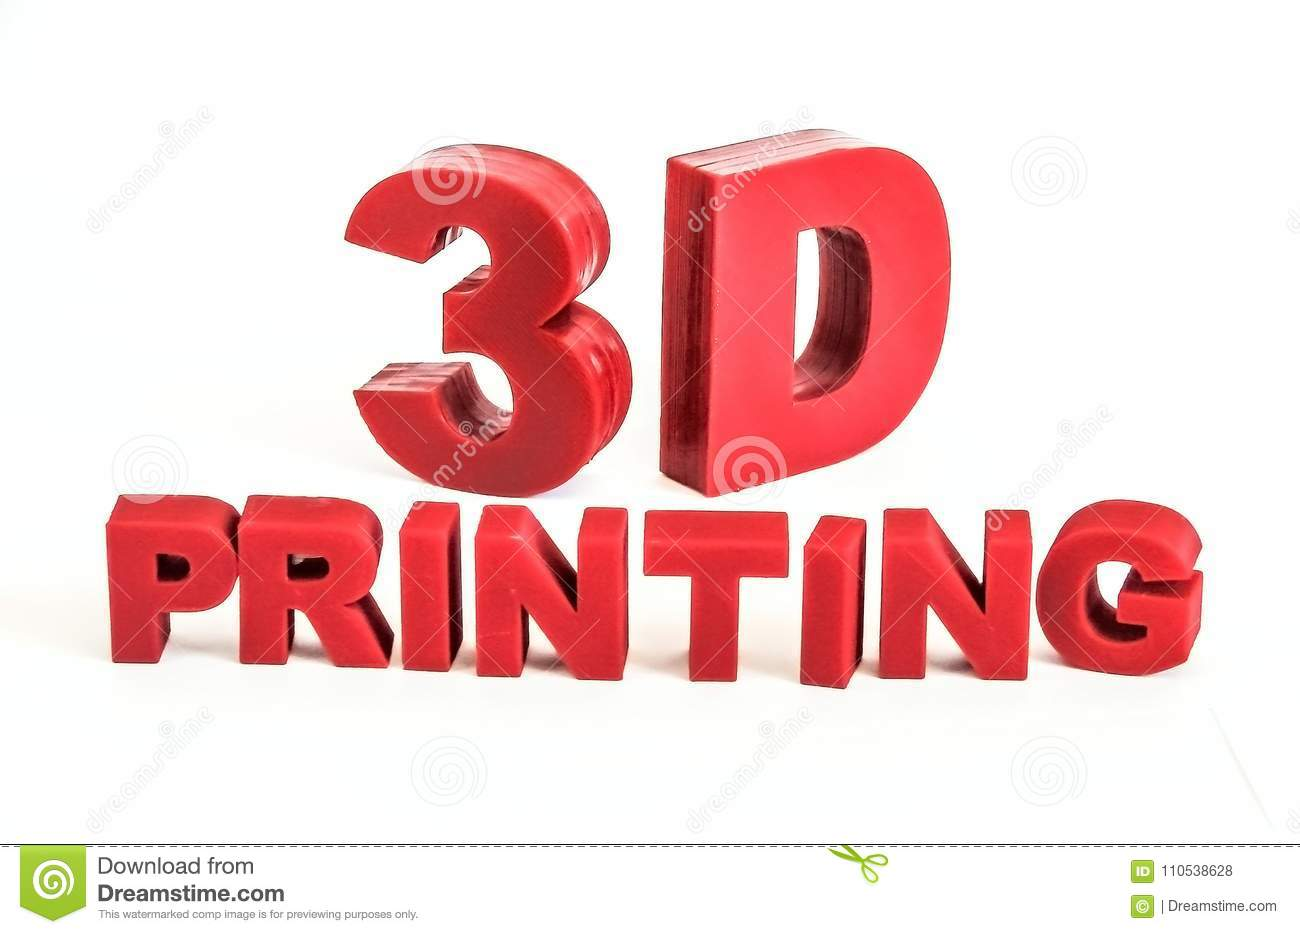 The 3d-printed red letters `3D printing` on a white background.